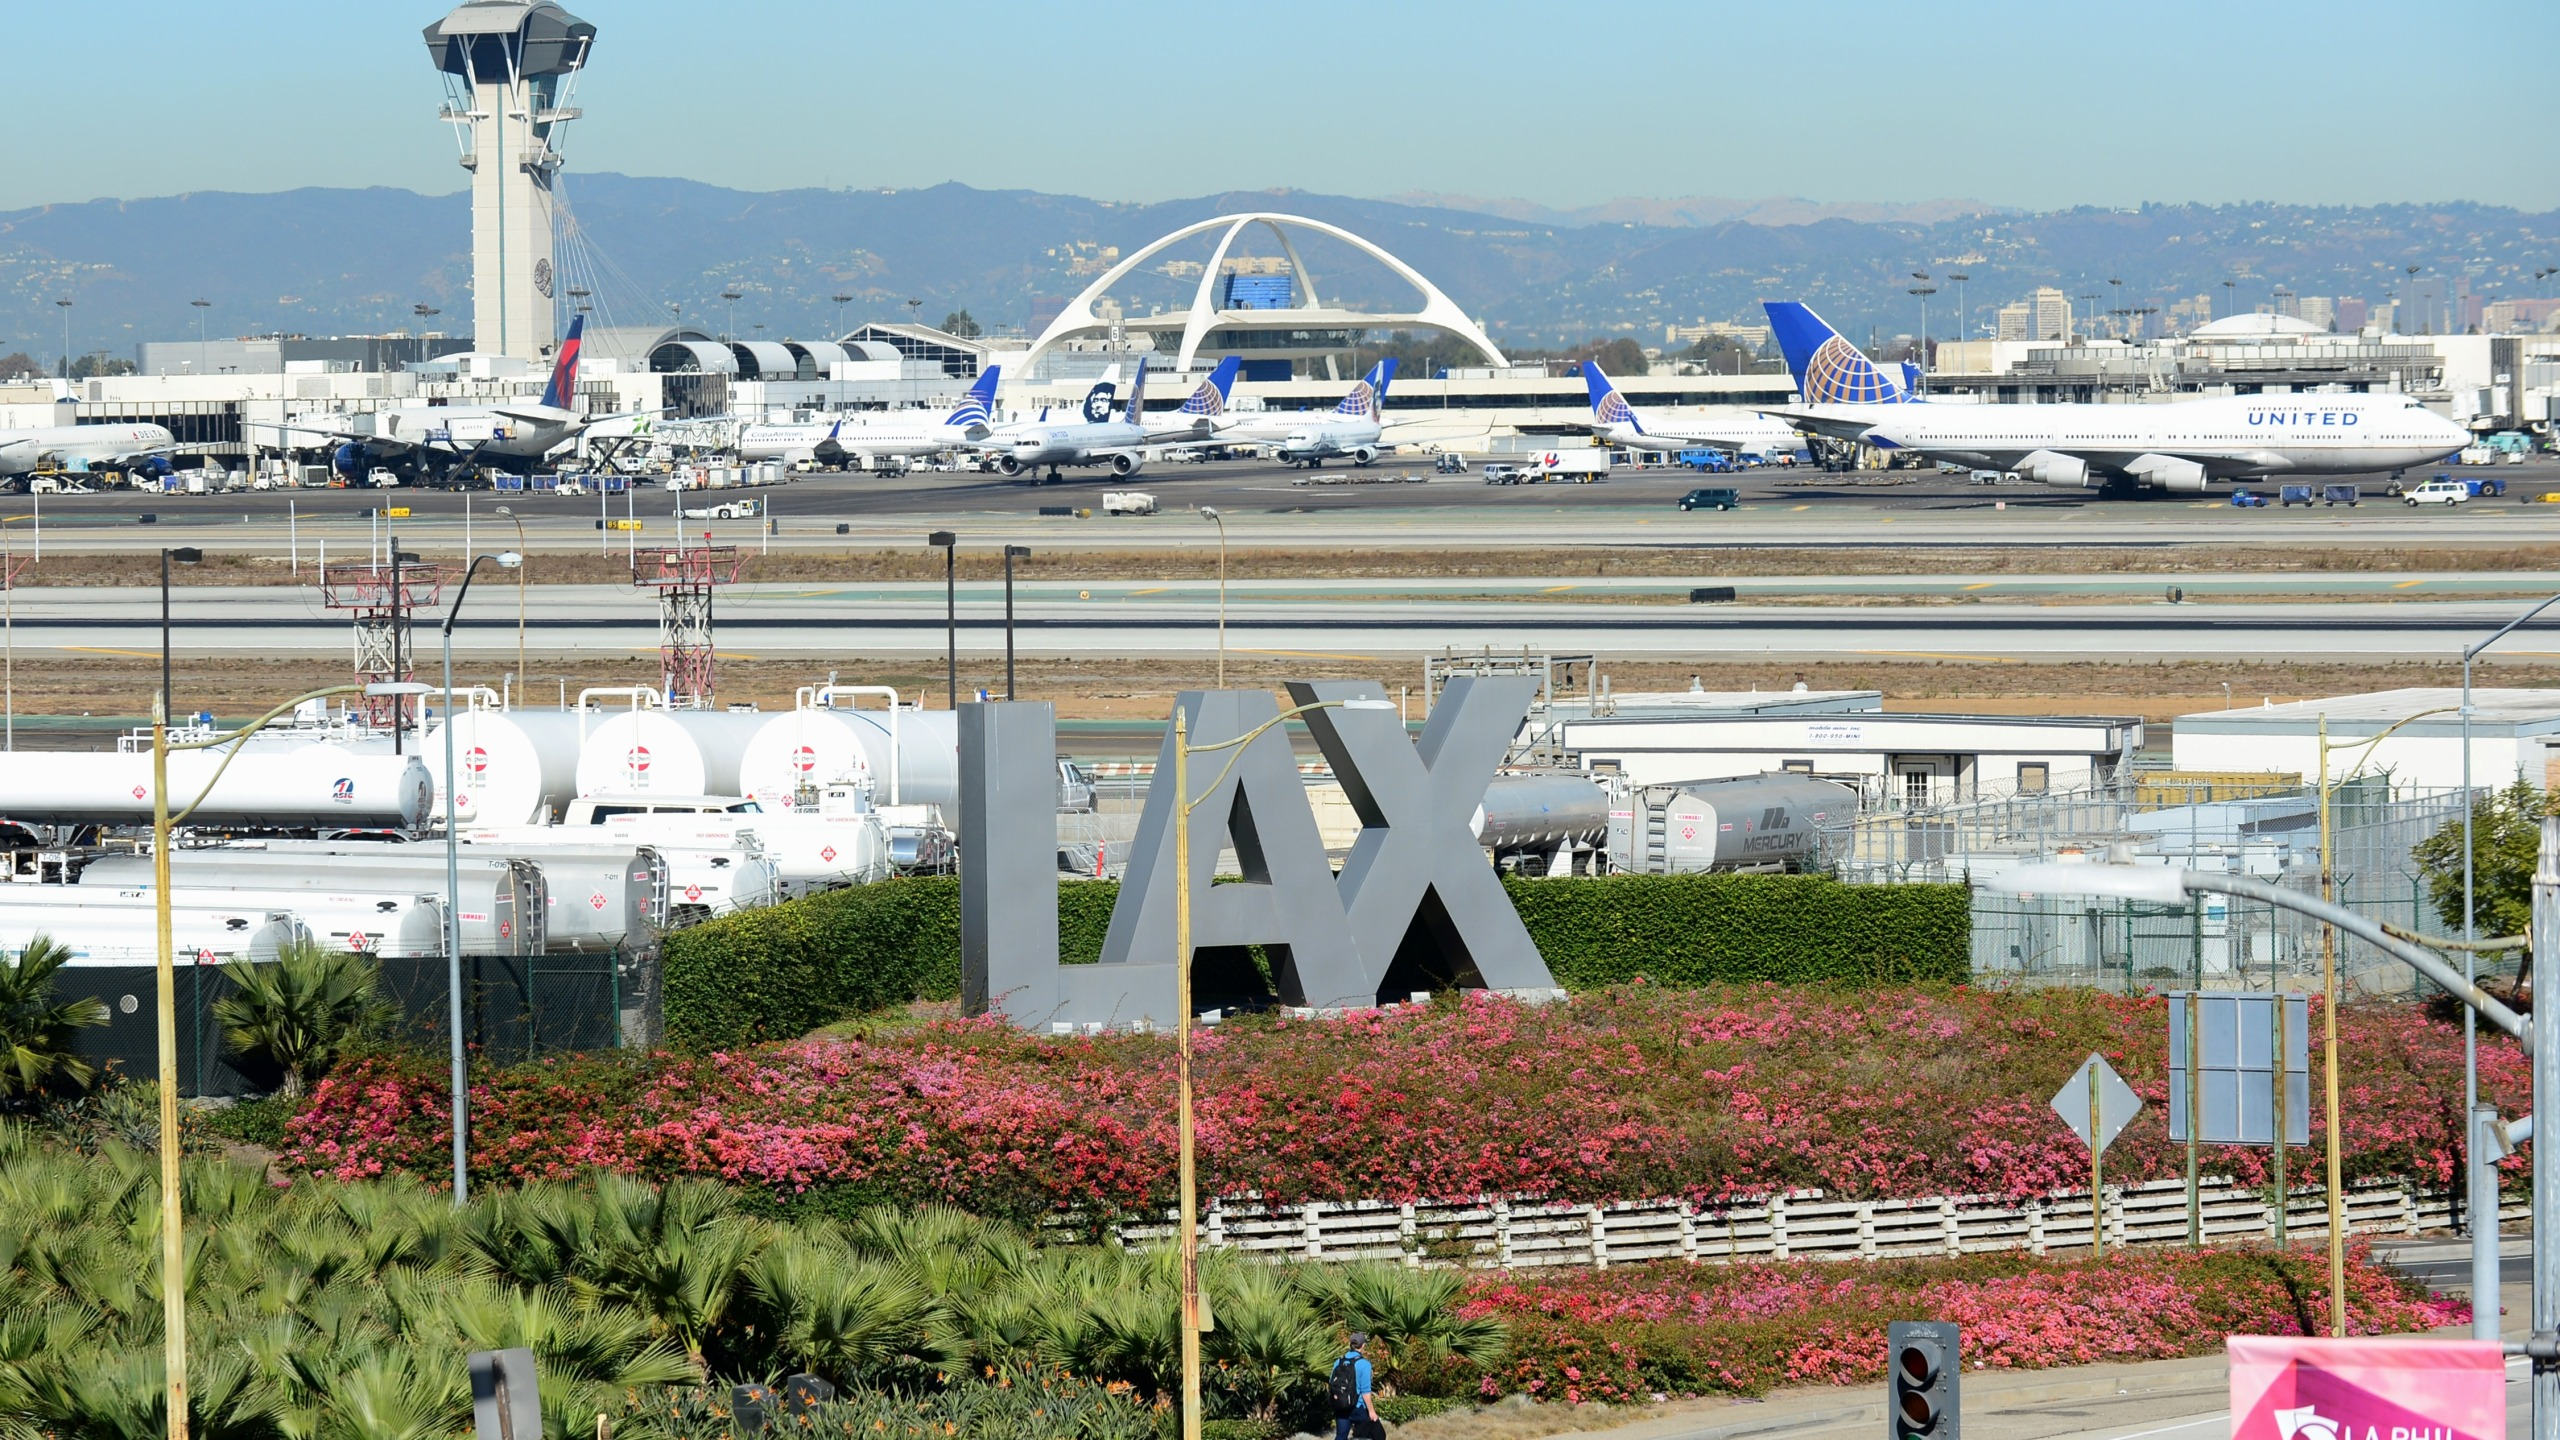 The Los Angeles International Airport is seen in a file photo. (Credit: FREDERIC J. BROWN/AFP/Getty Images)